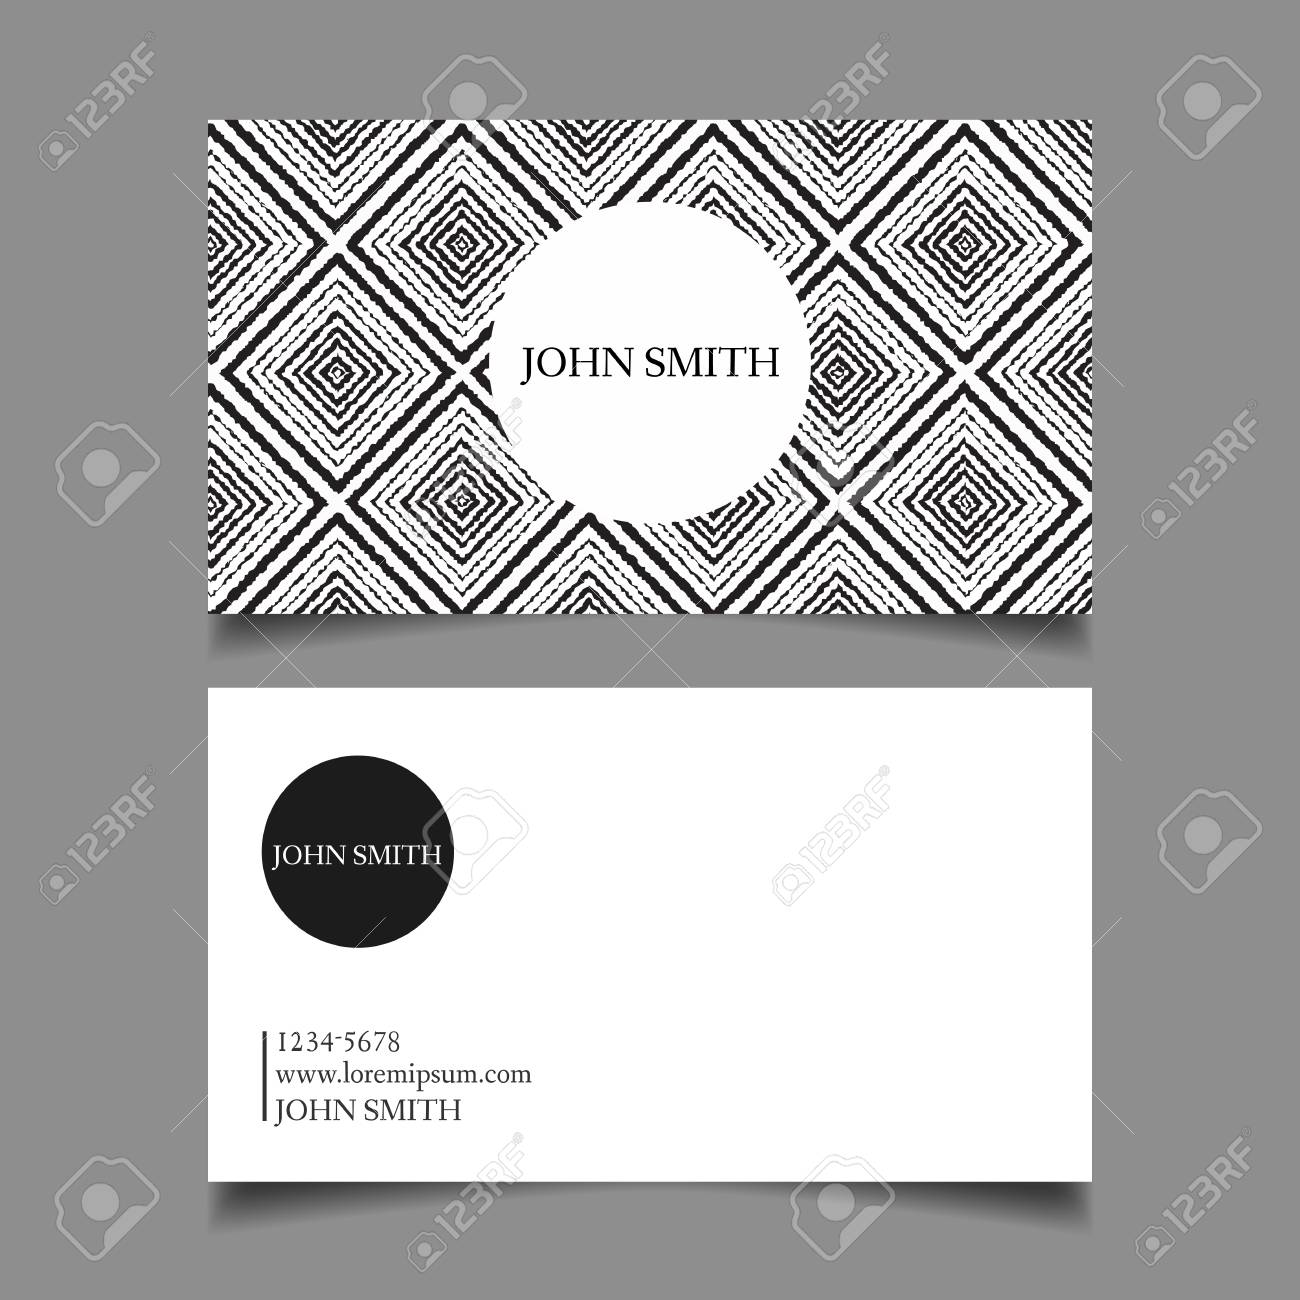 Business card template editable neat design of the draft map business card template editable neat design of the draft map vector illustration stock colourmoves